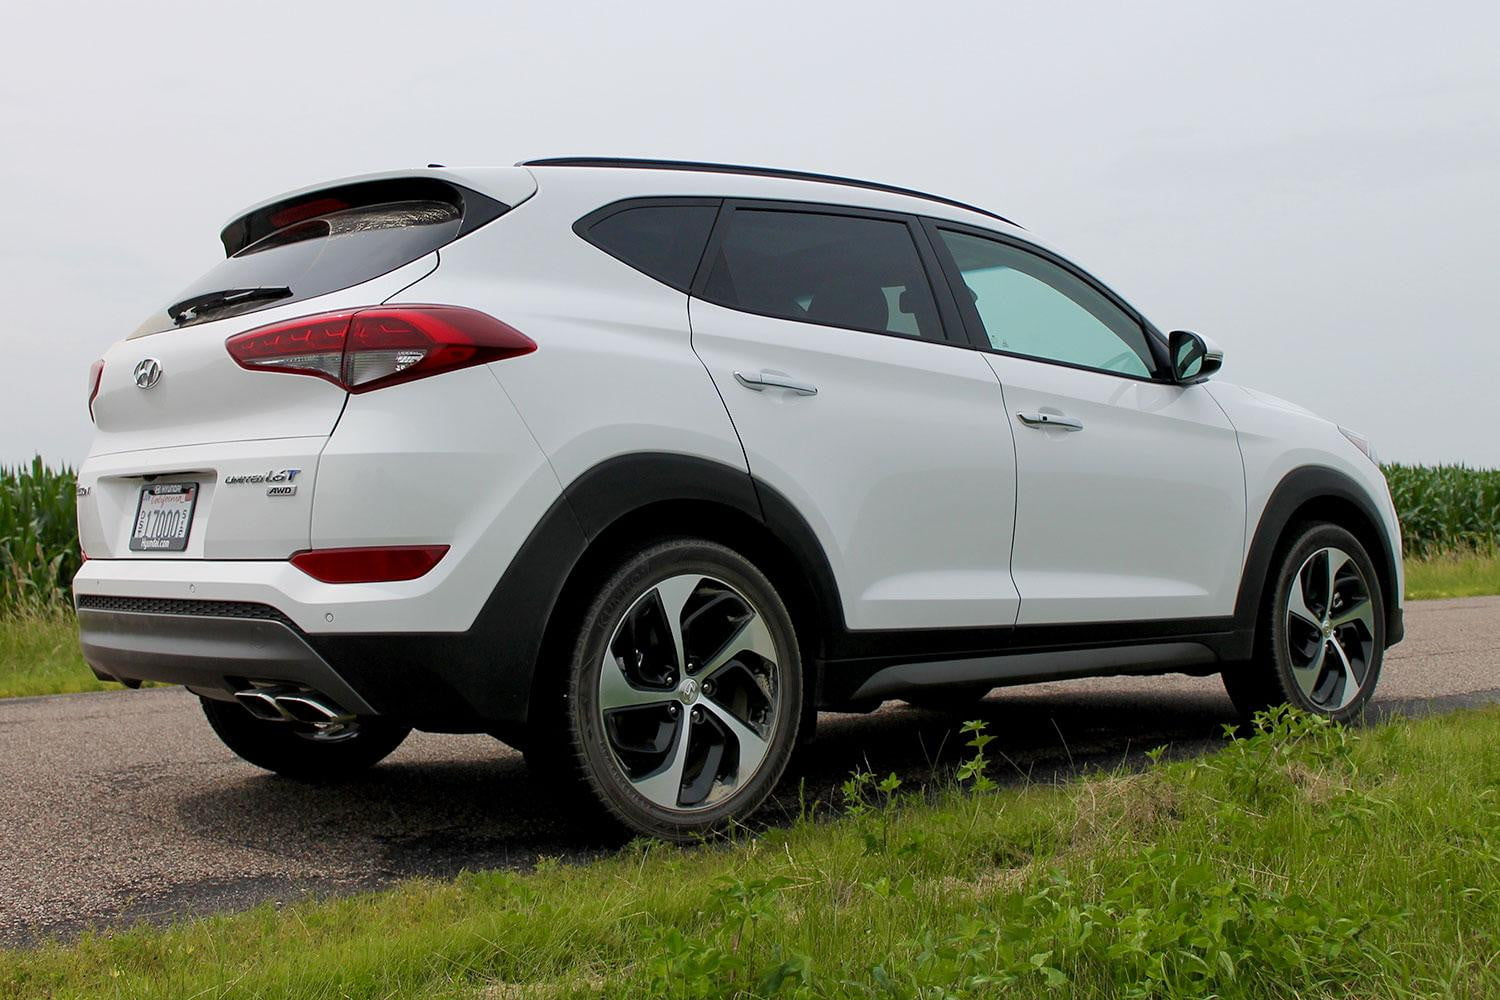 2016 hyundai tucson crossover review digital trends. Black Bedroom Furniture Sets. Home Design Ideas